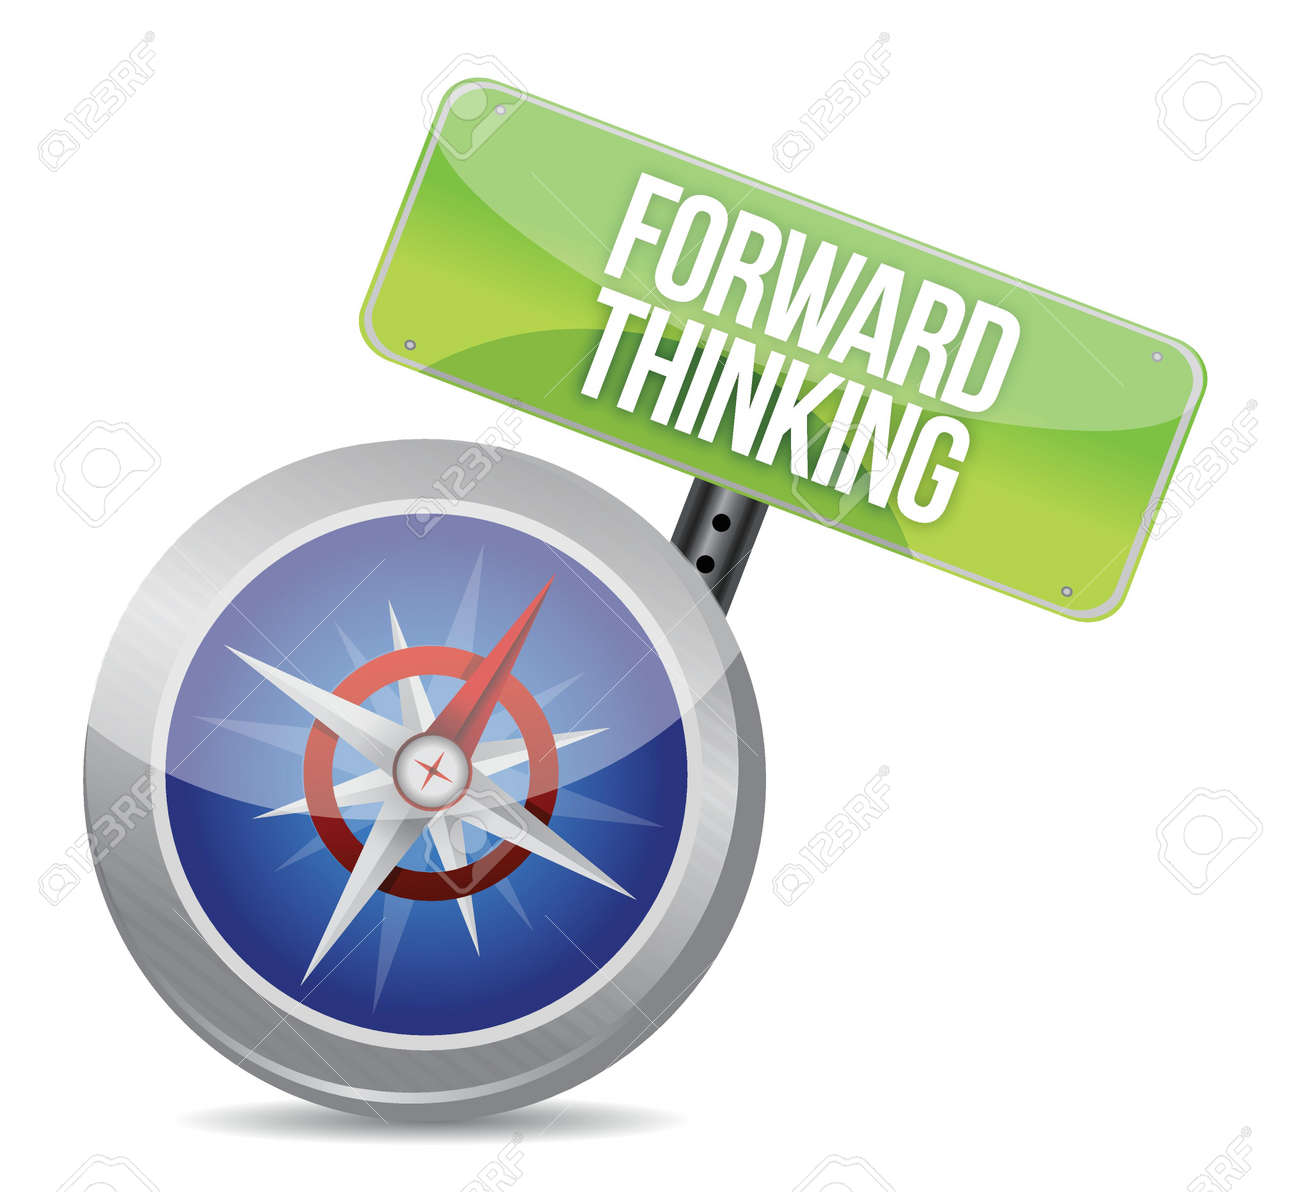 Forward Thinking compass illustration design over a white background Stock Vector - 17824061